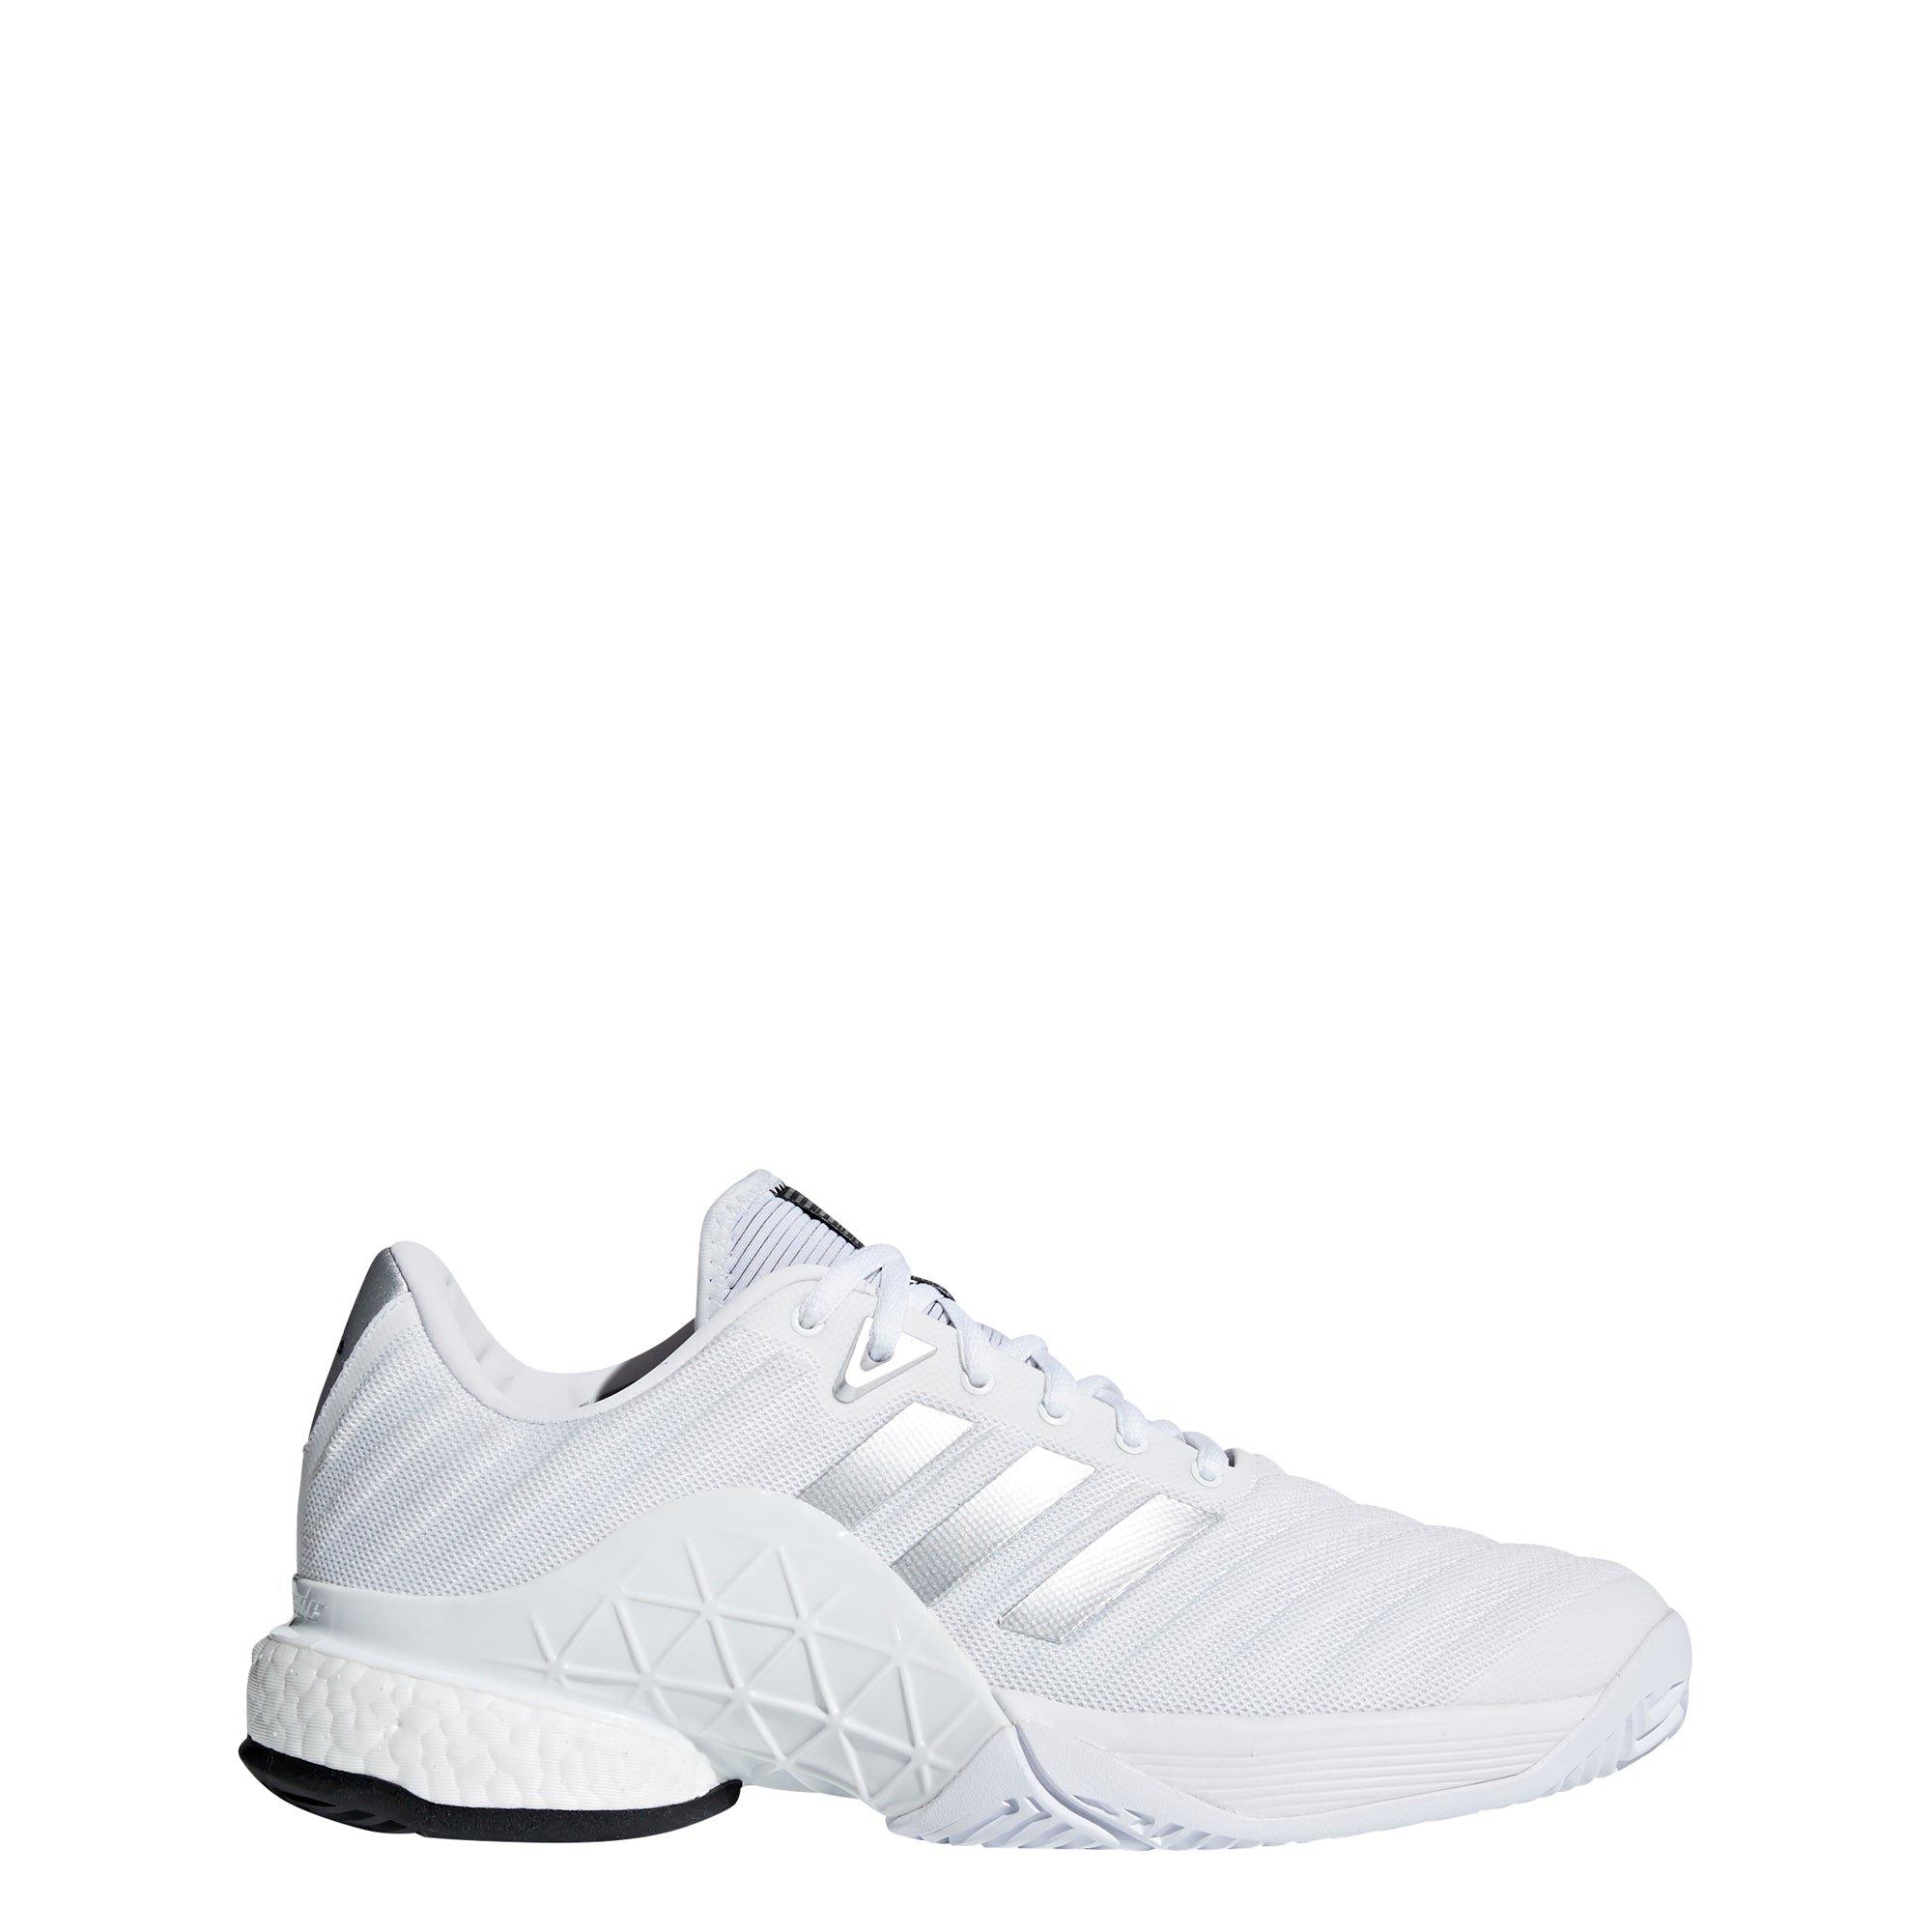 brand new 9037a 9f263 Buy adidas Men barricade 2018 boost Tennis Shoes, White Silver Online in  Singapore   Royal Sporting House